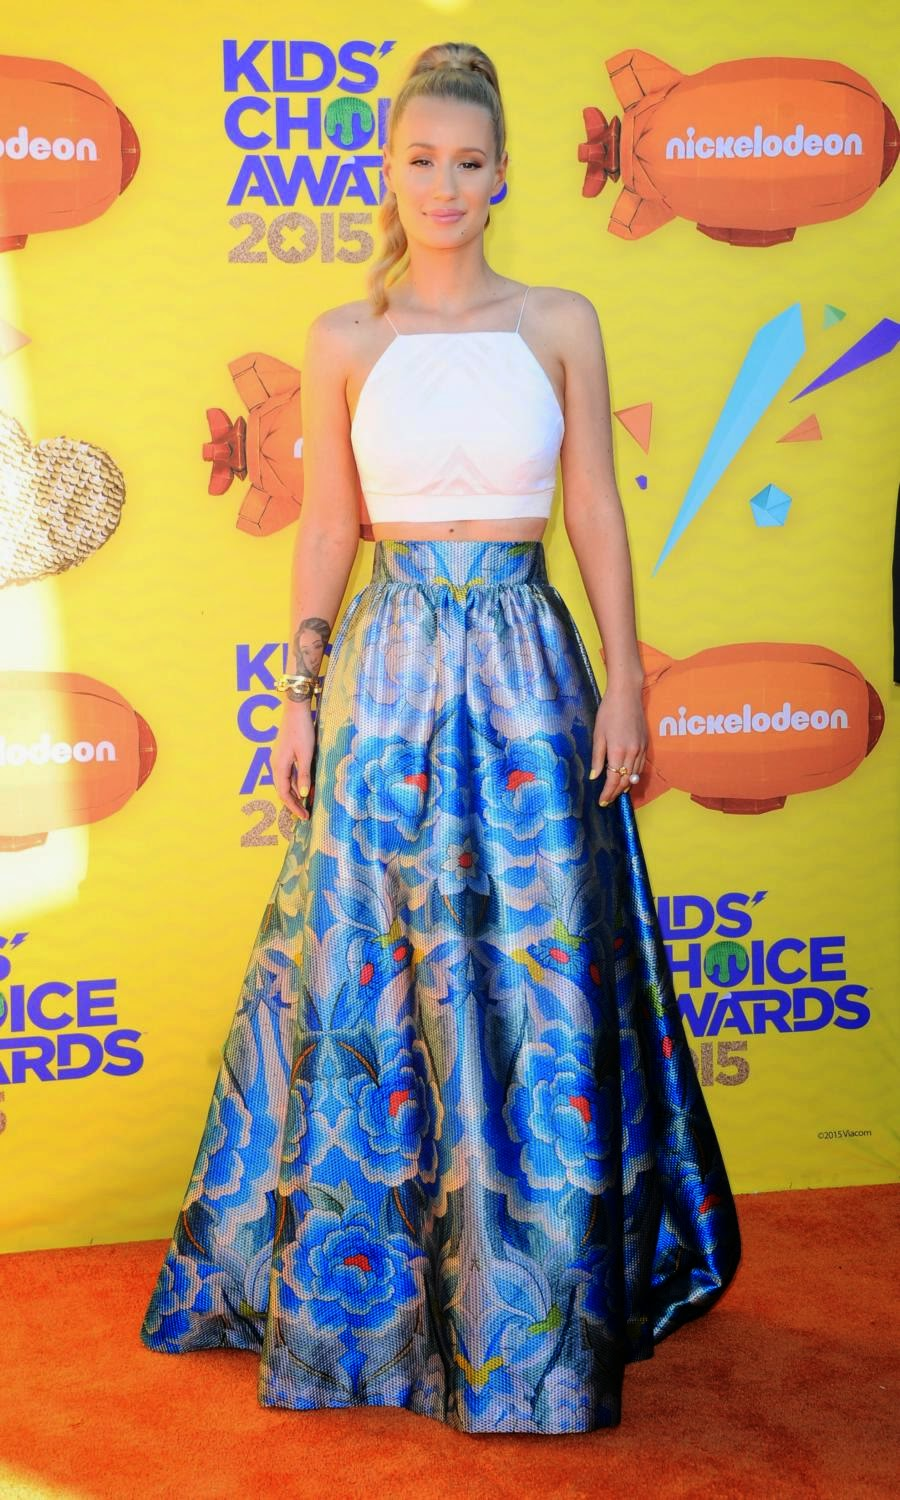 Iggy Azalea in a cropped top and skirt at the 2015 Nickelodeon Kids' Choice Awards